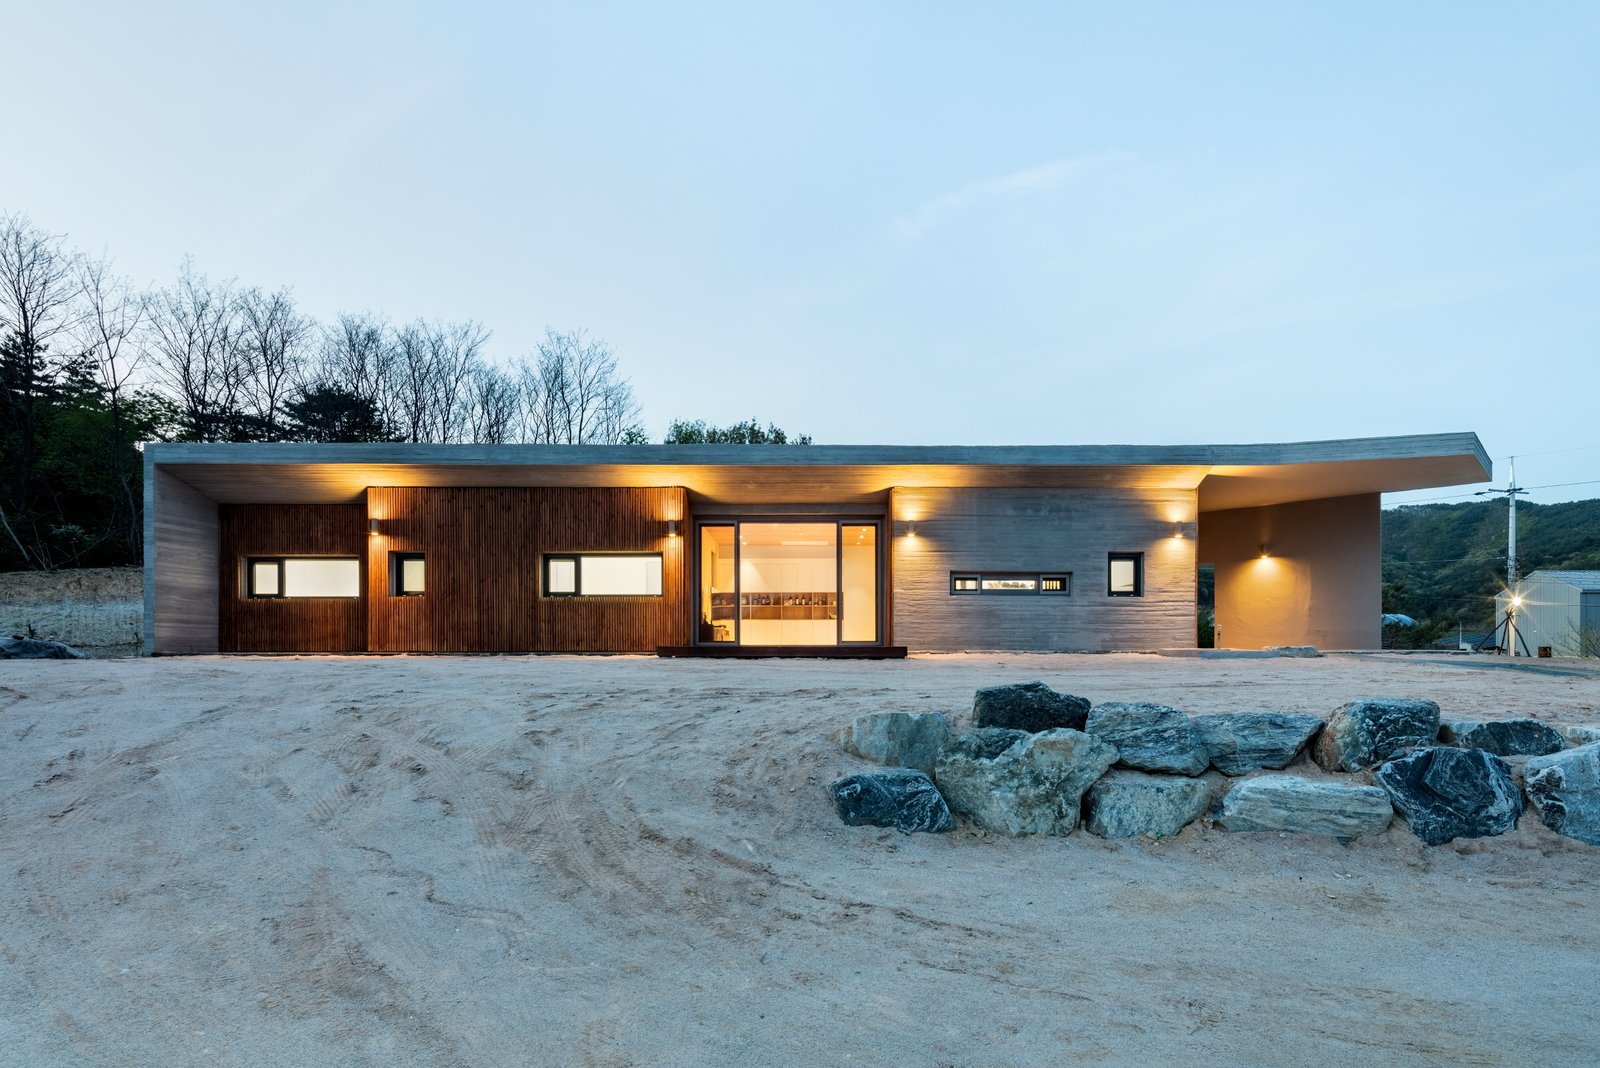 front view Tagged: Outdoor, Concrete Patio, Porch, Deck, Front Yard, and Wood Patio, Porch, Deck.  Apple Farm House by 2m2 architects